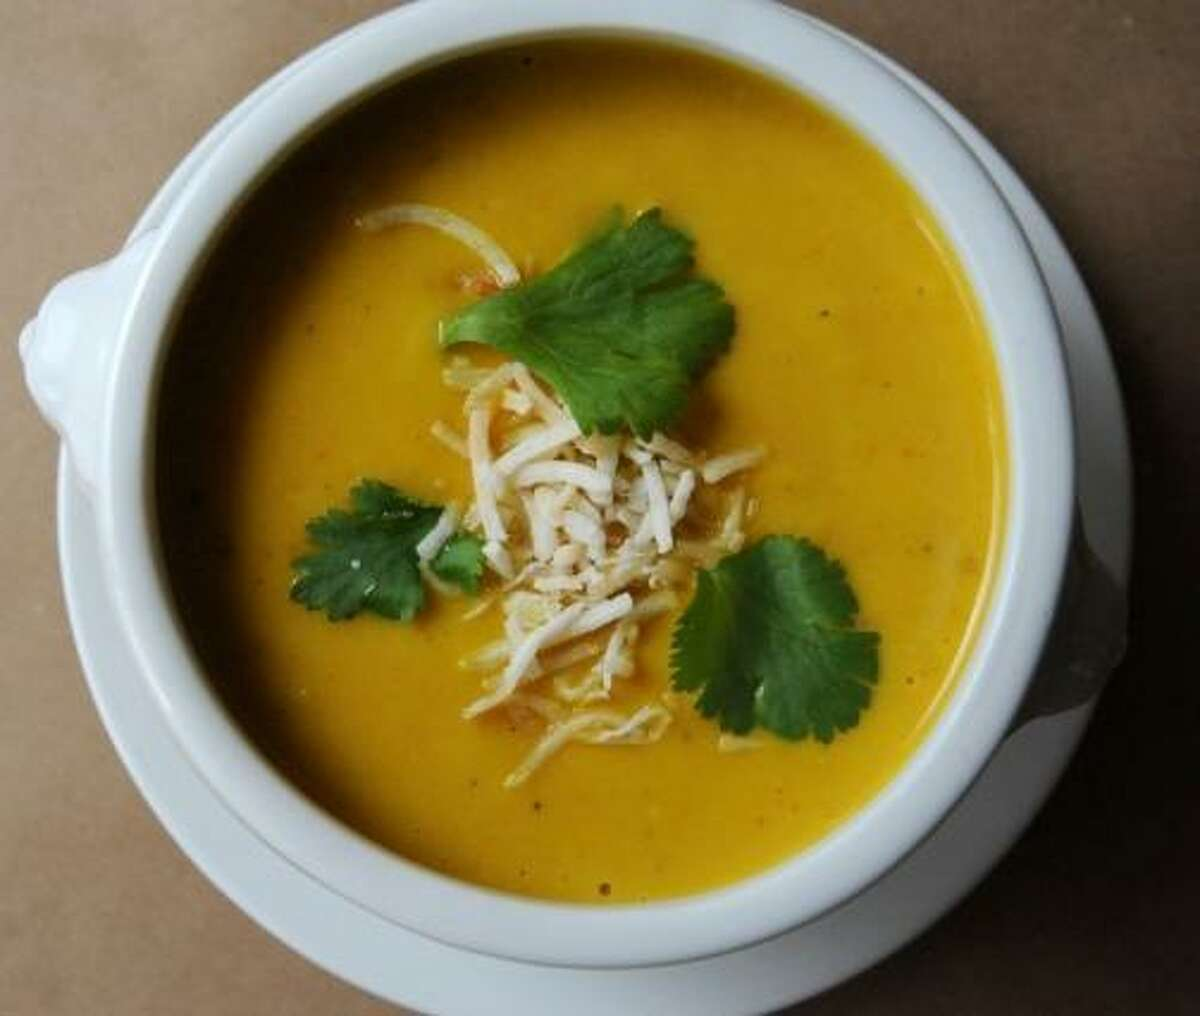 A creamy curried carrot with sweet potato soup from the Millstone Cafe.